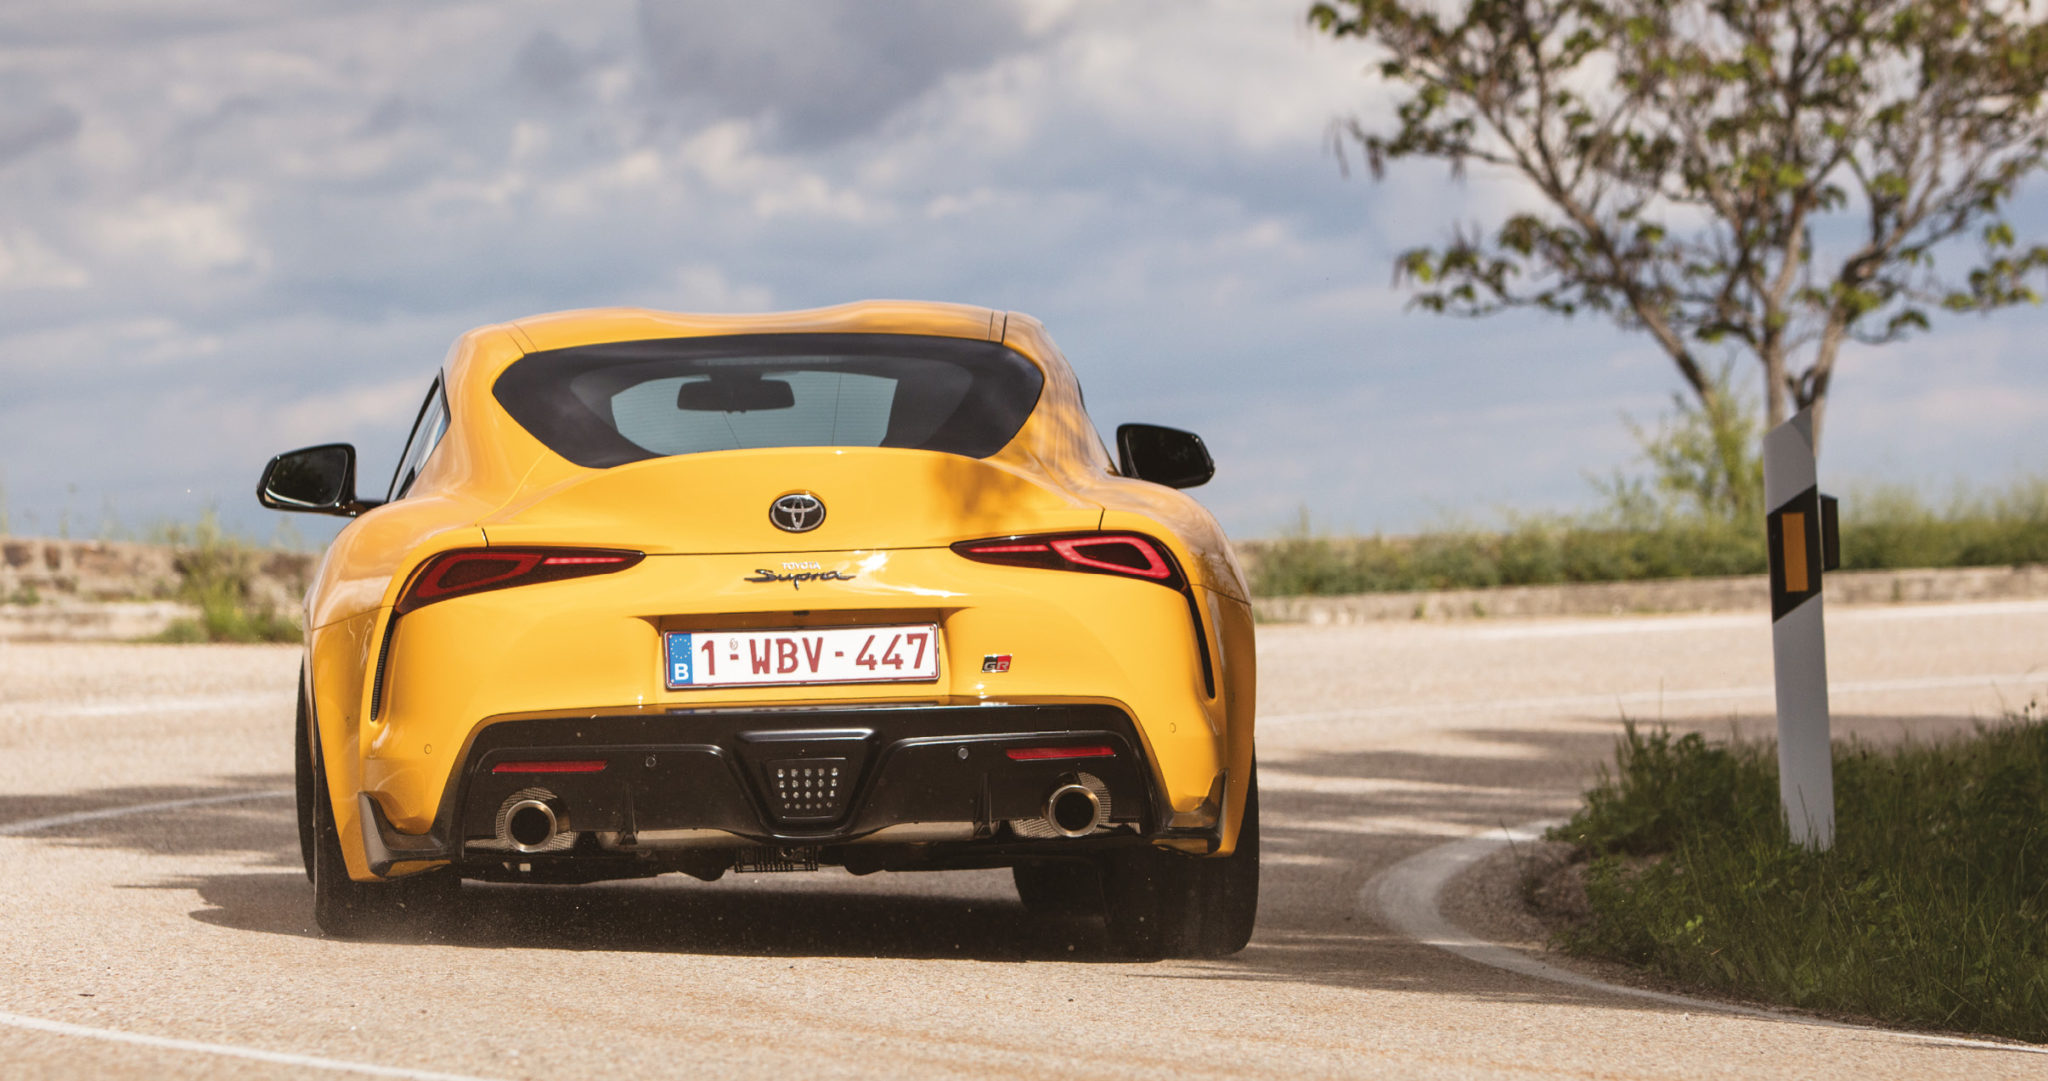 It may have BMW underpinnings, but the new Supra does enough to set itself apart